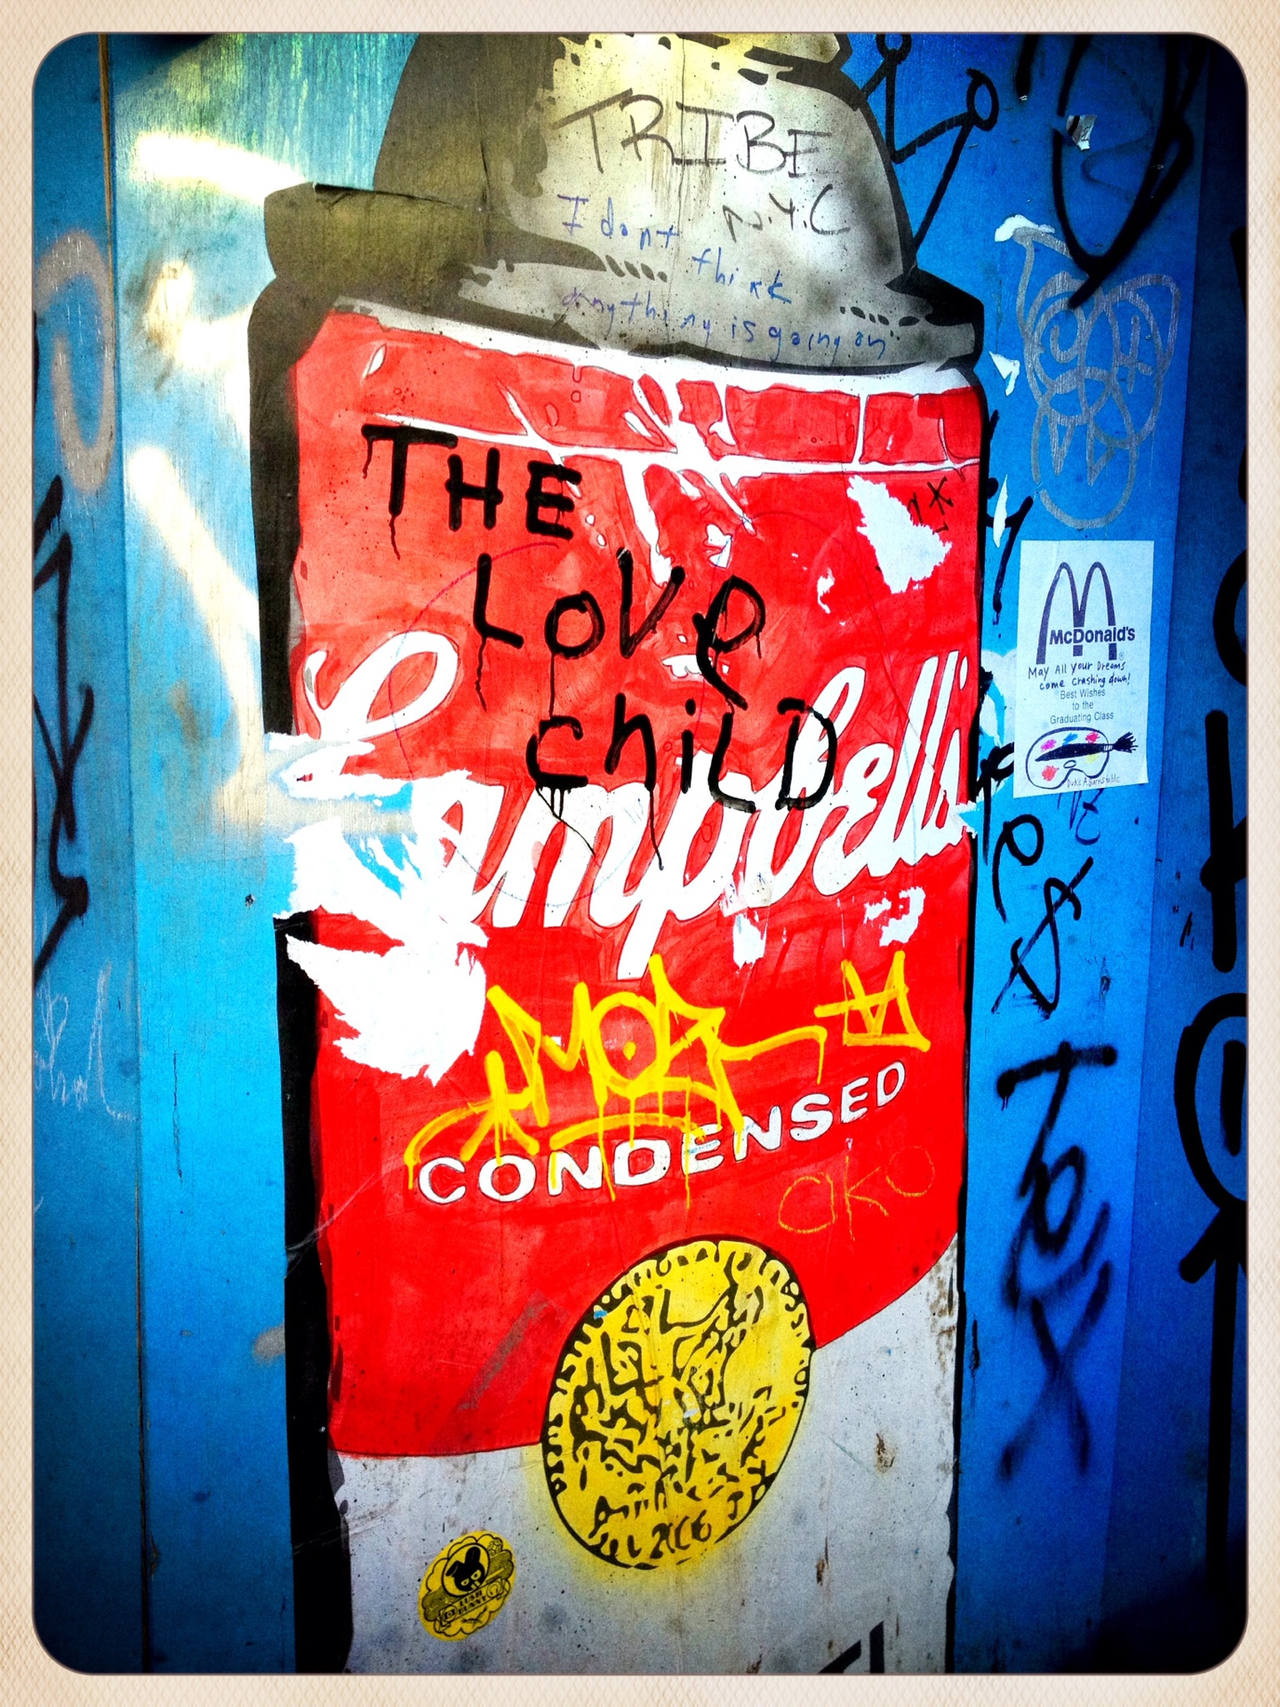 Red can - #peppersearch #pepper #graffiti #nyc #soho #redcan #pop